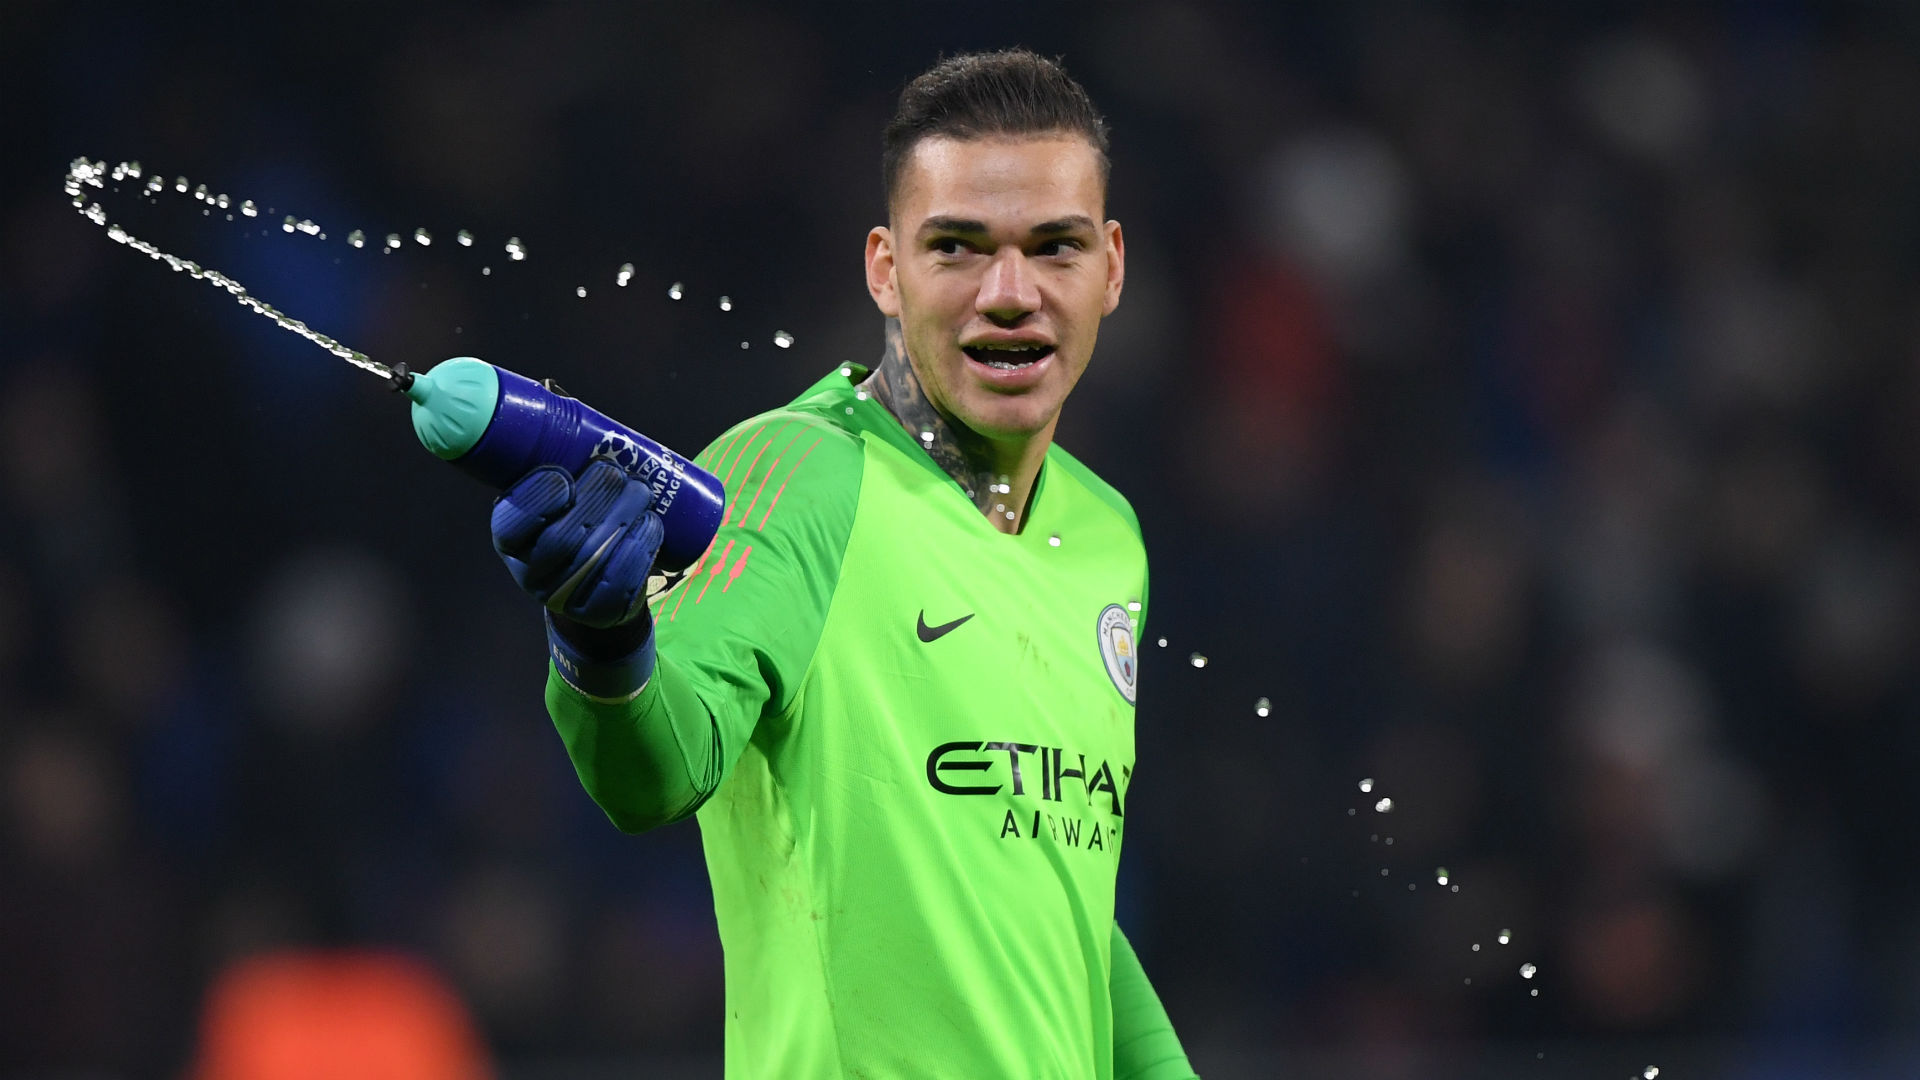 Manchester City goalkeeper Ederson denies supporting Tommy Robinson following photo